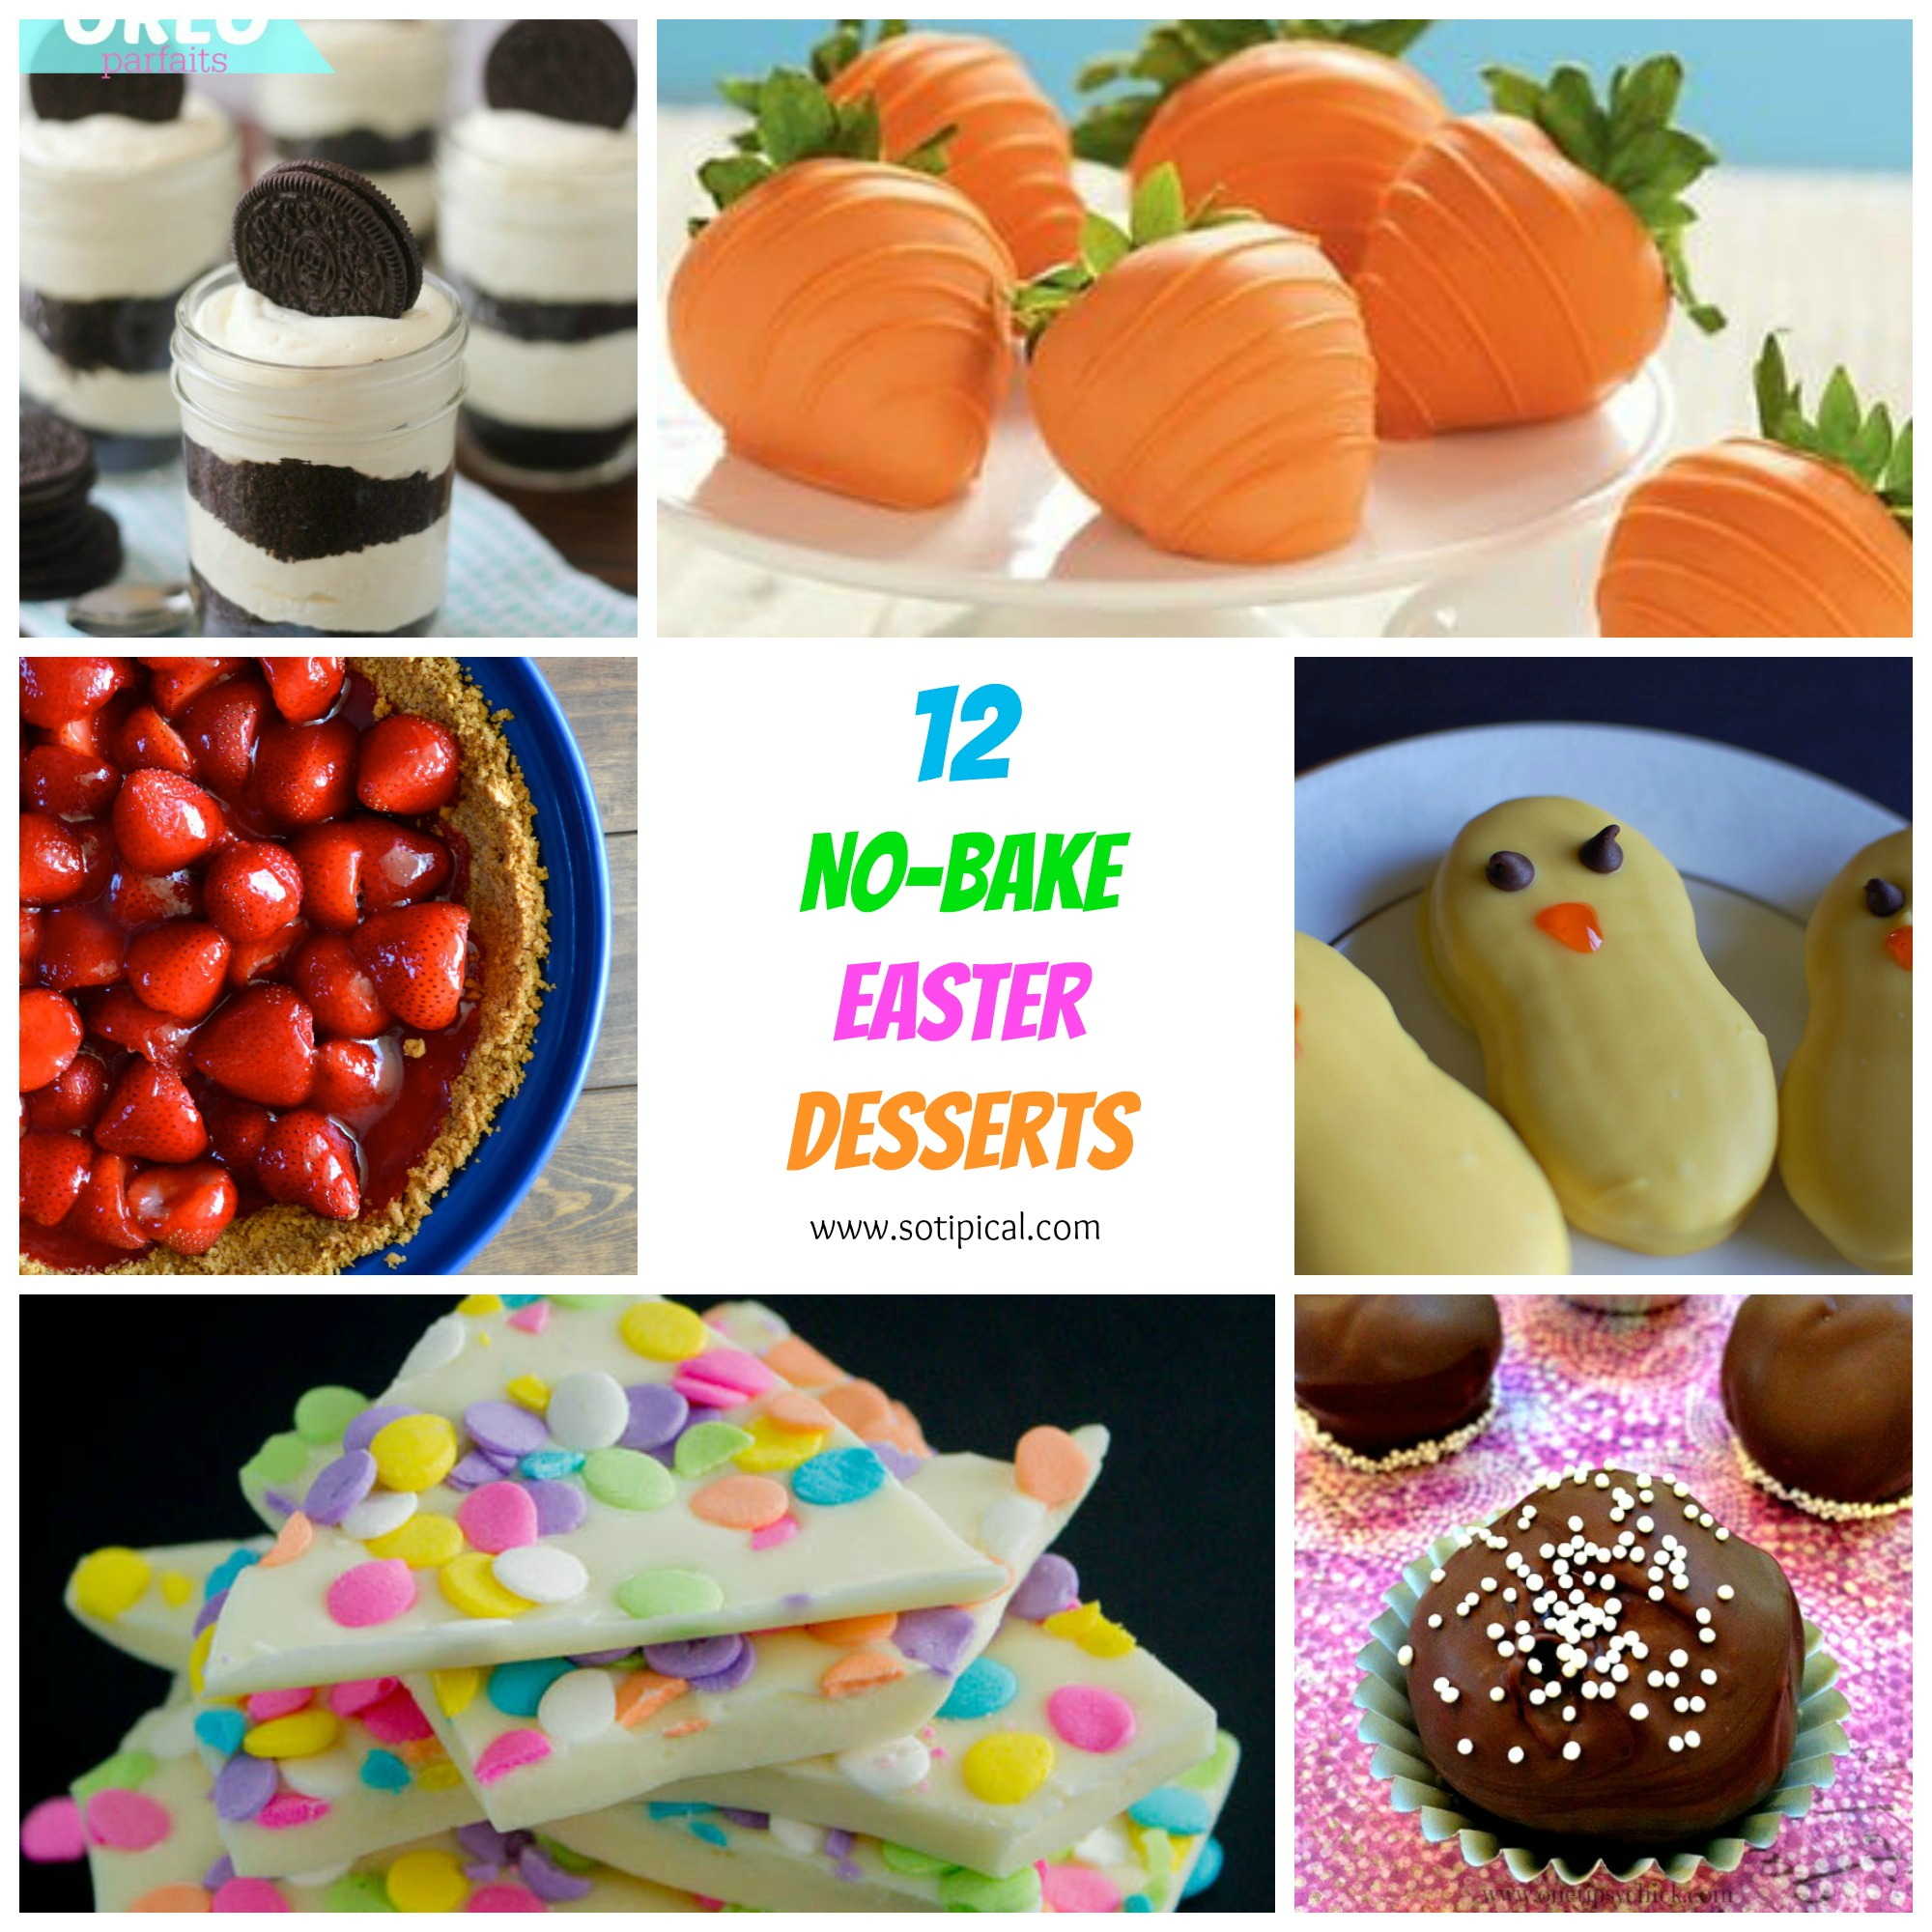 12 No Bake Easter Desserts sotipical